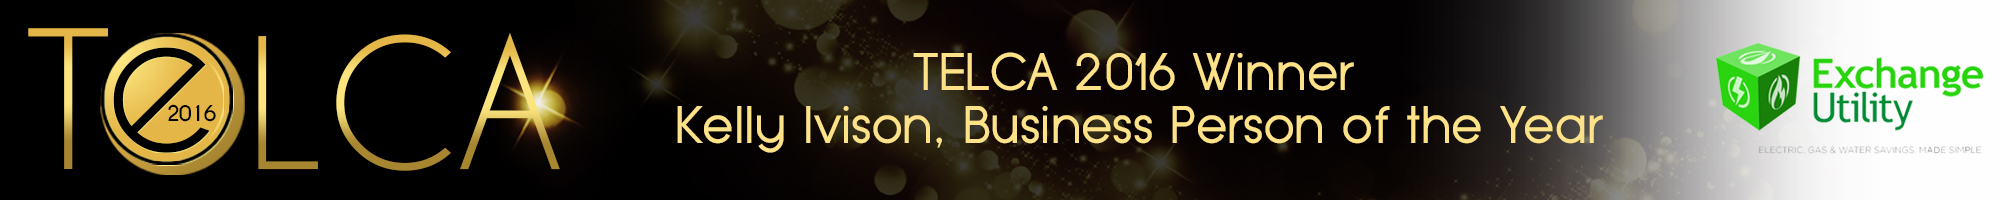 TELCA 2016 - WINNER - 07 BUSINESS PERSON [KELLY IVISON]